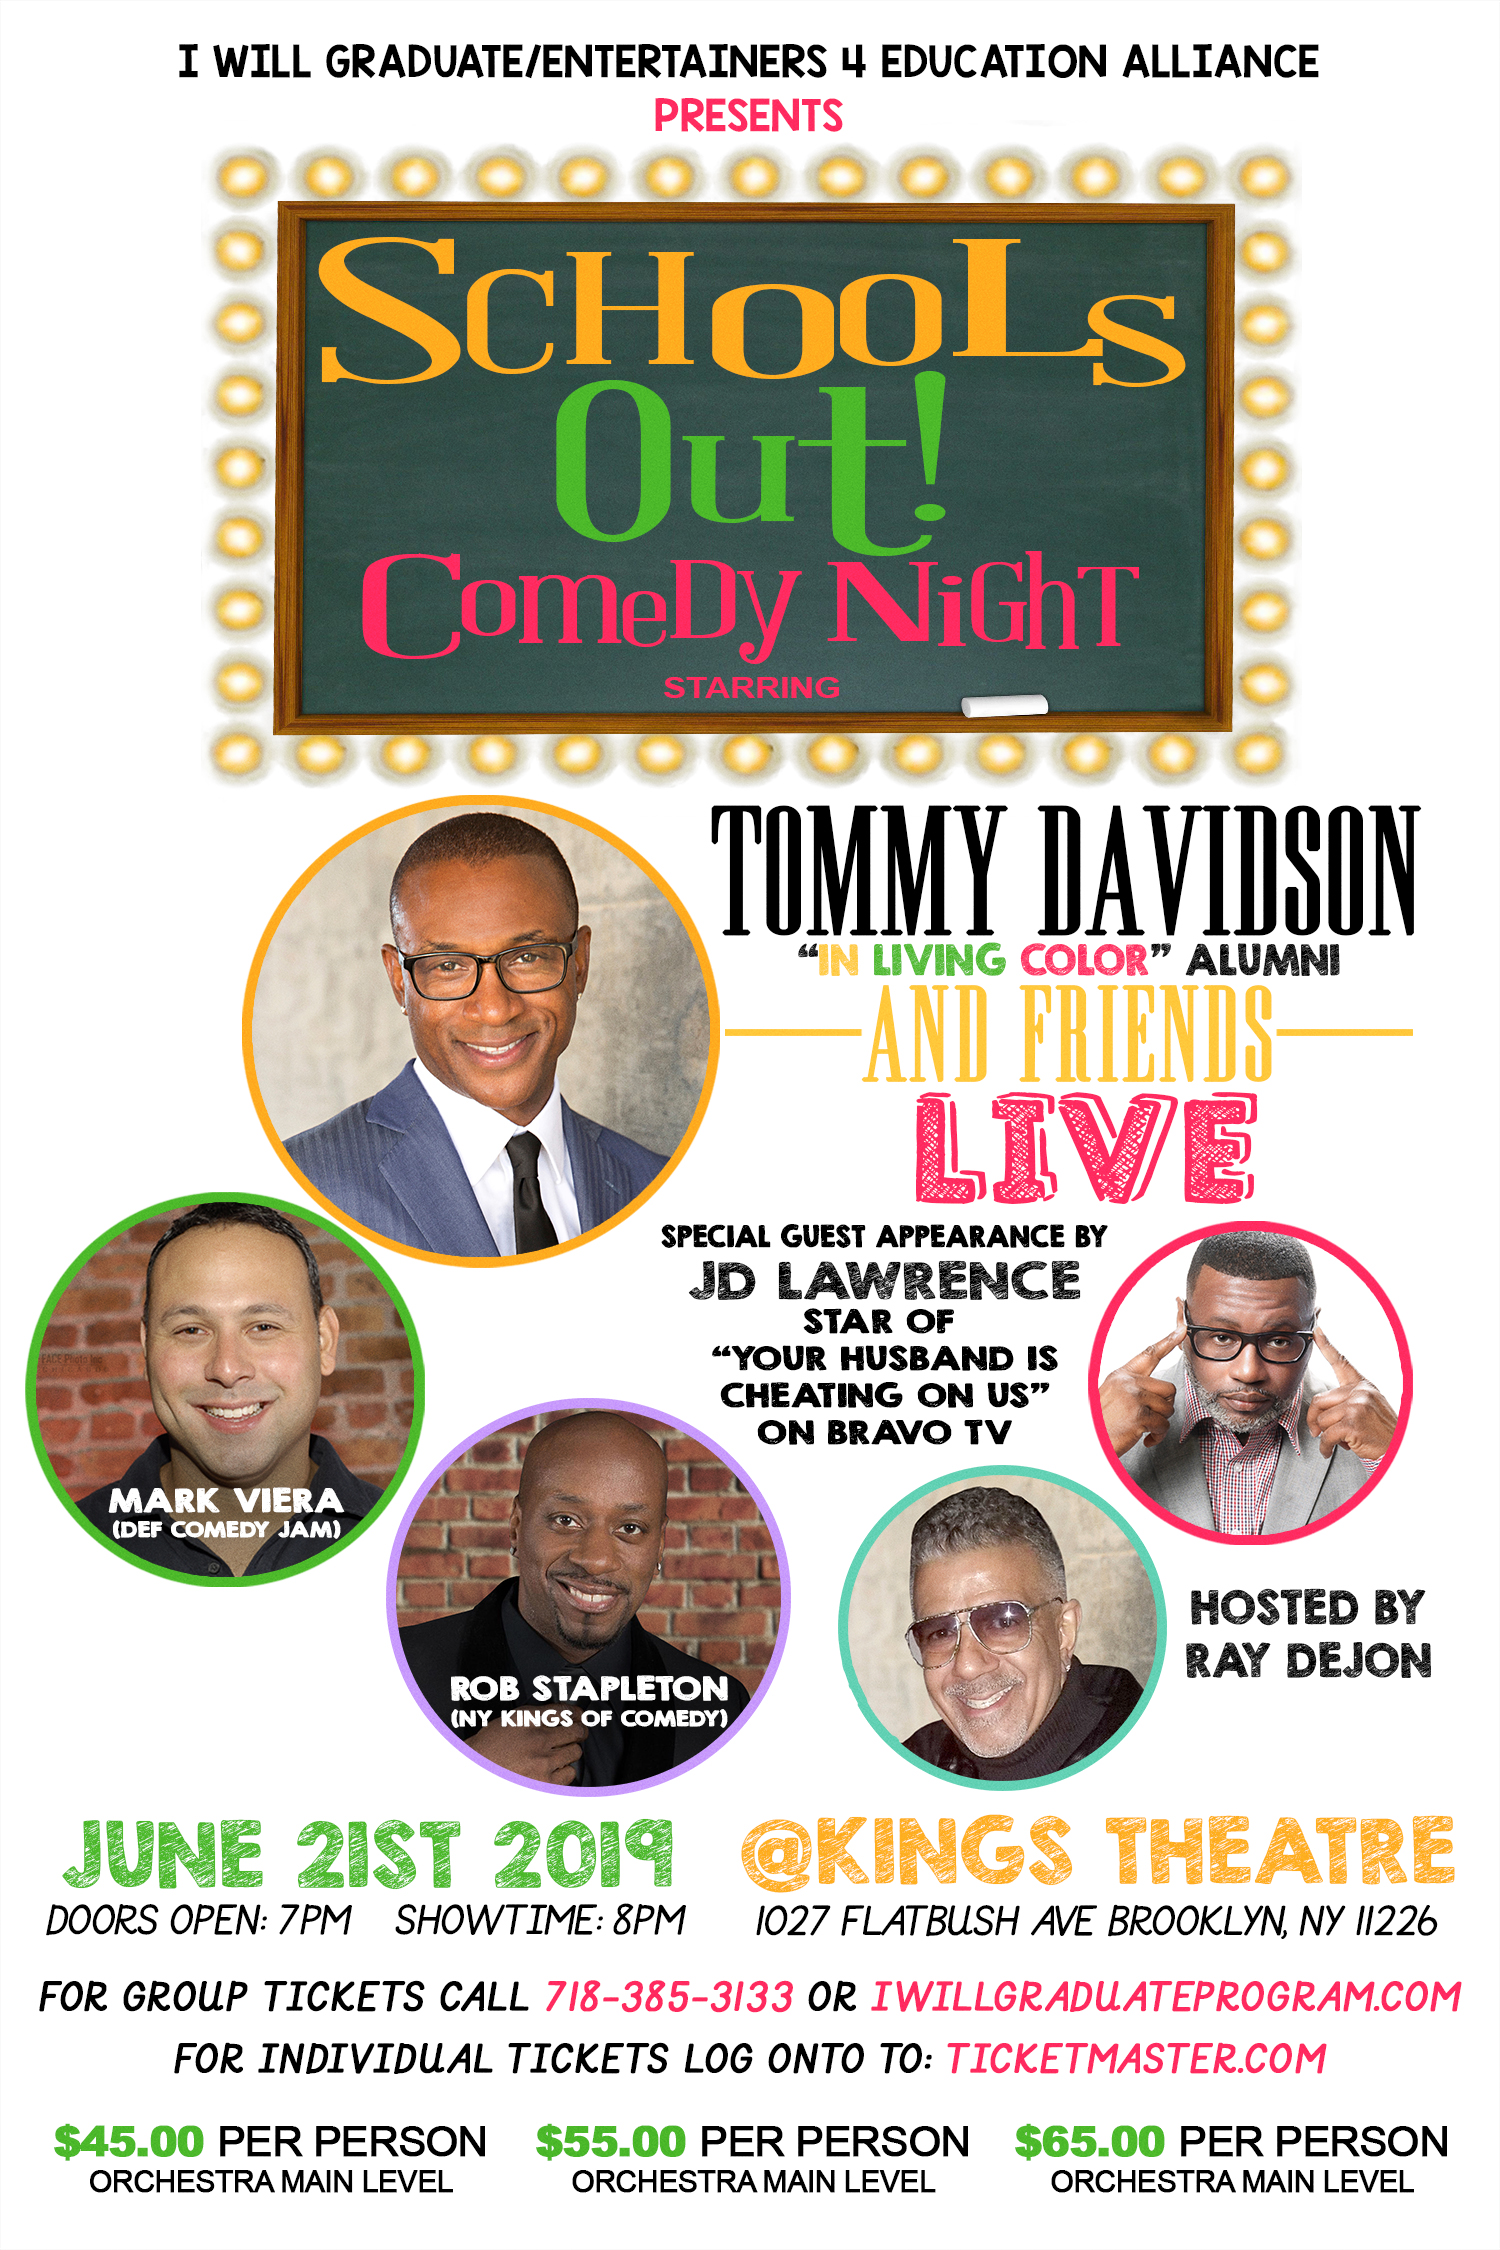 Schools Out Comedy Night